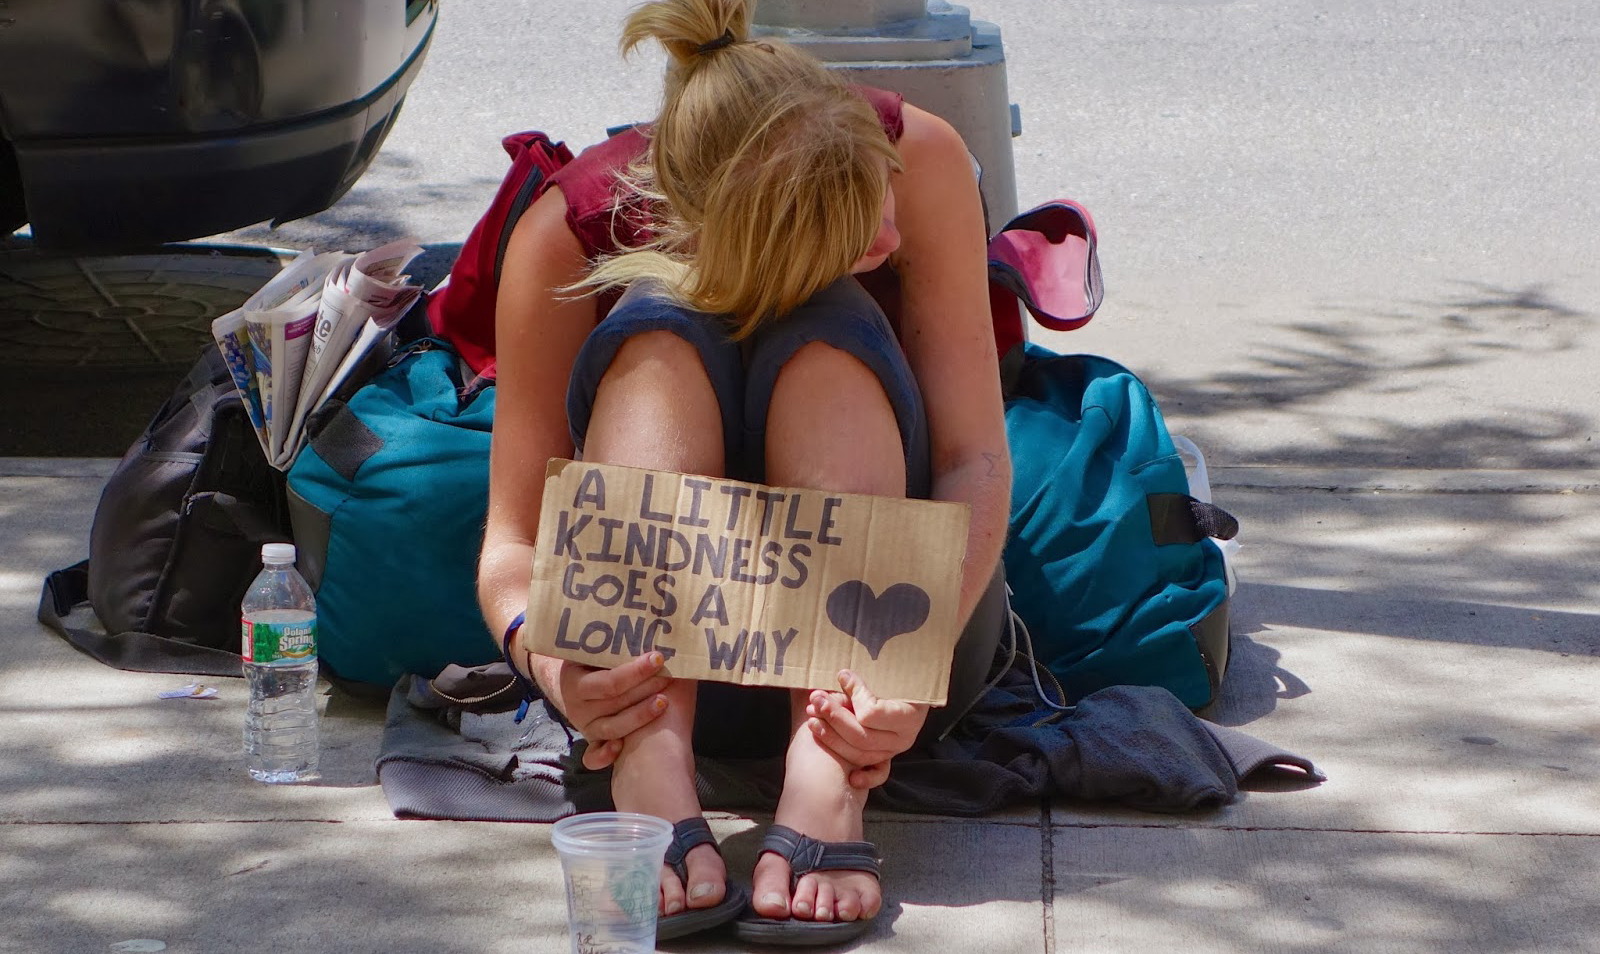 What I Learned From Feeding The Homeless